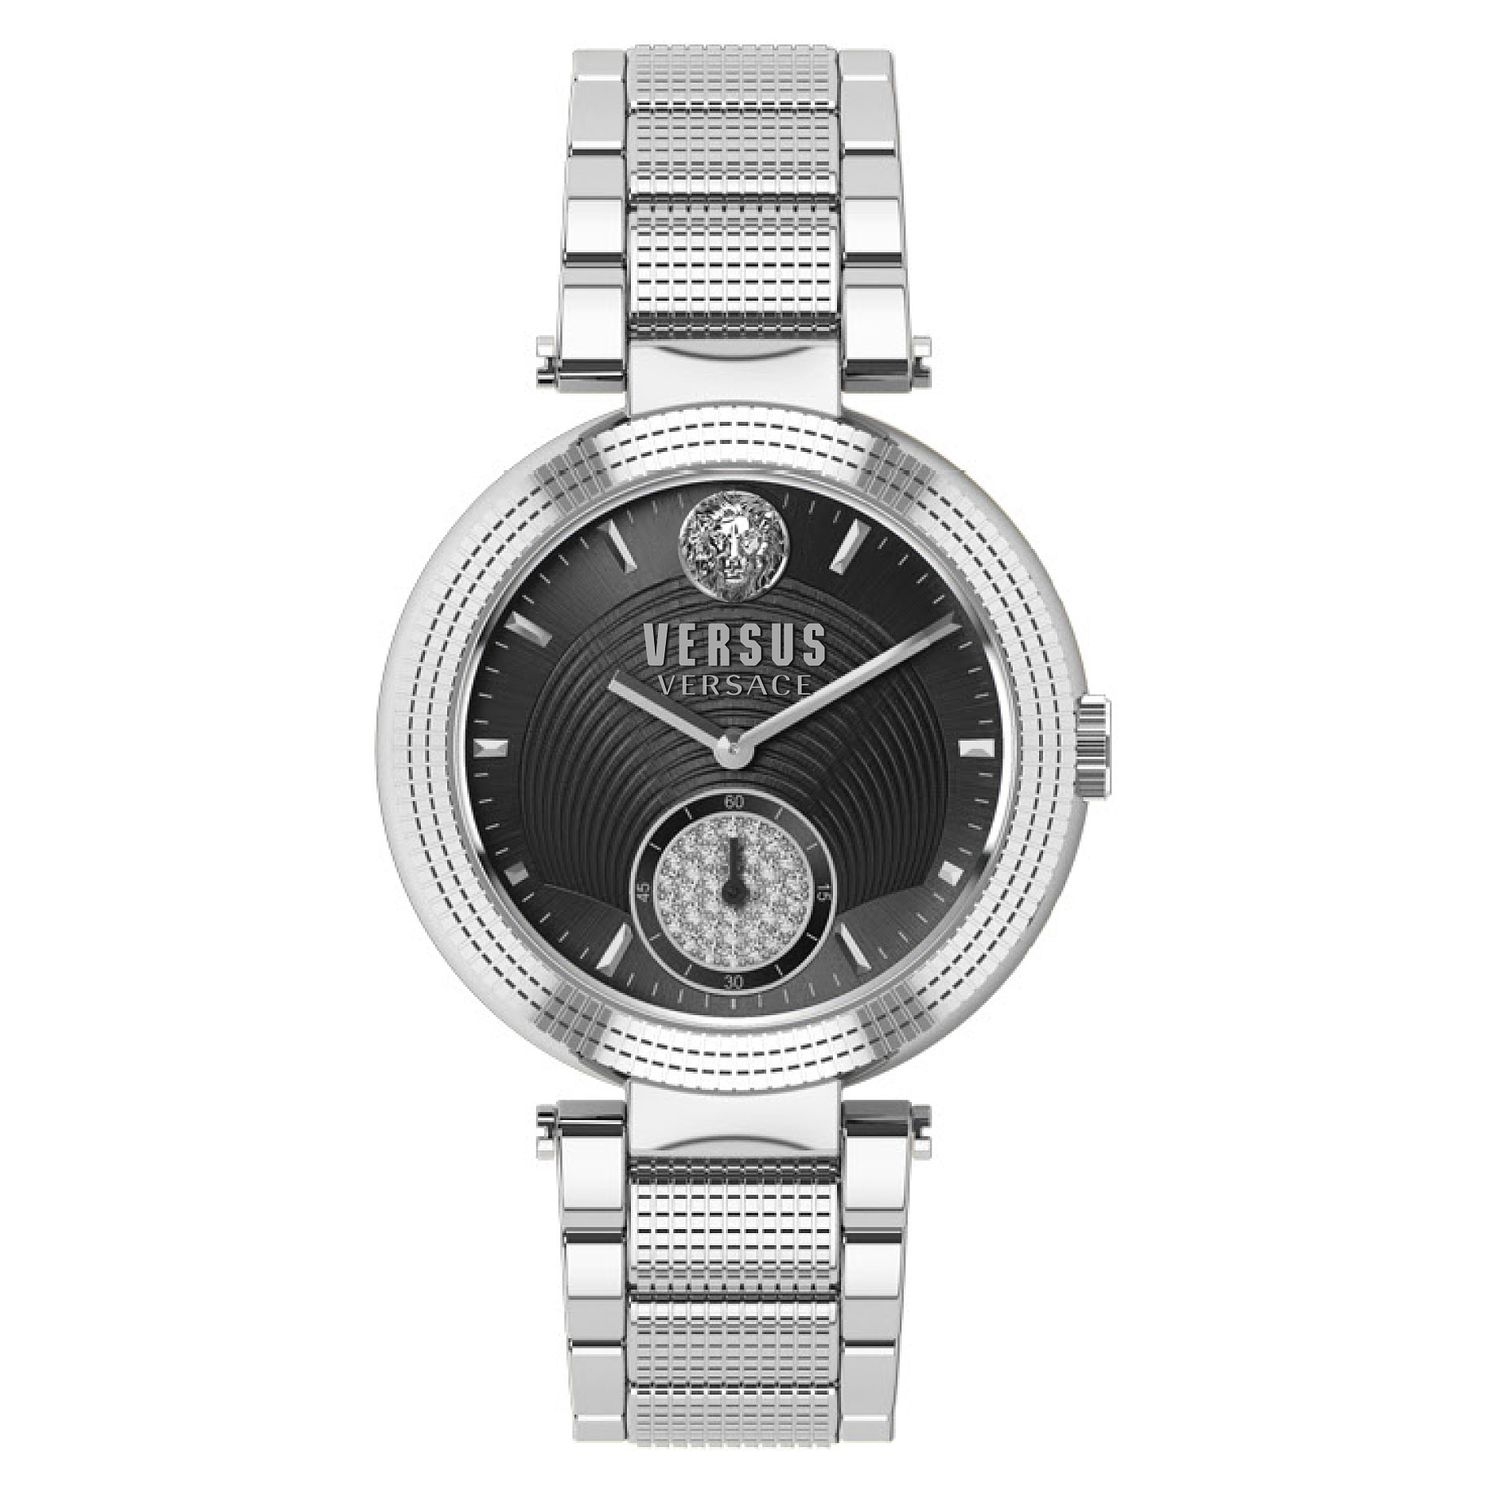 Versus Versace Star Ferry Stainless Steel Bracelet Watch - Product number 2892863